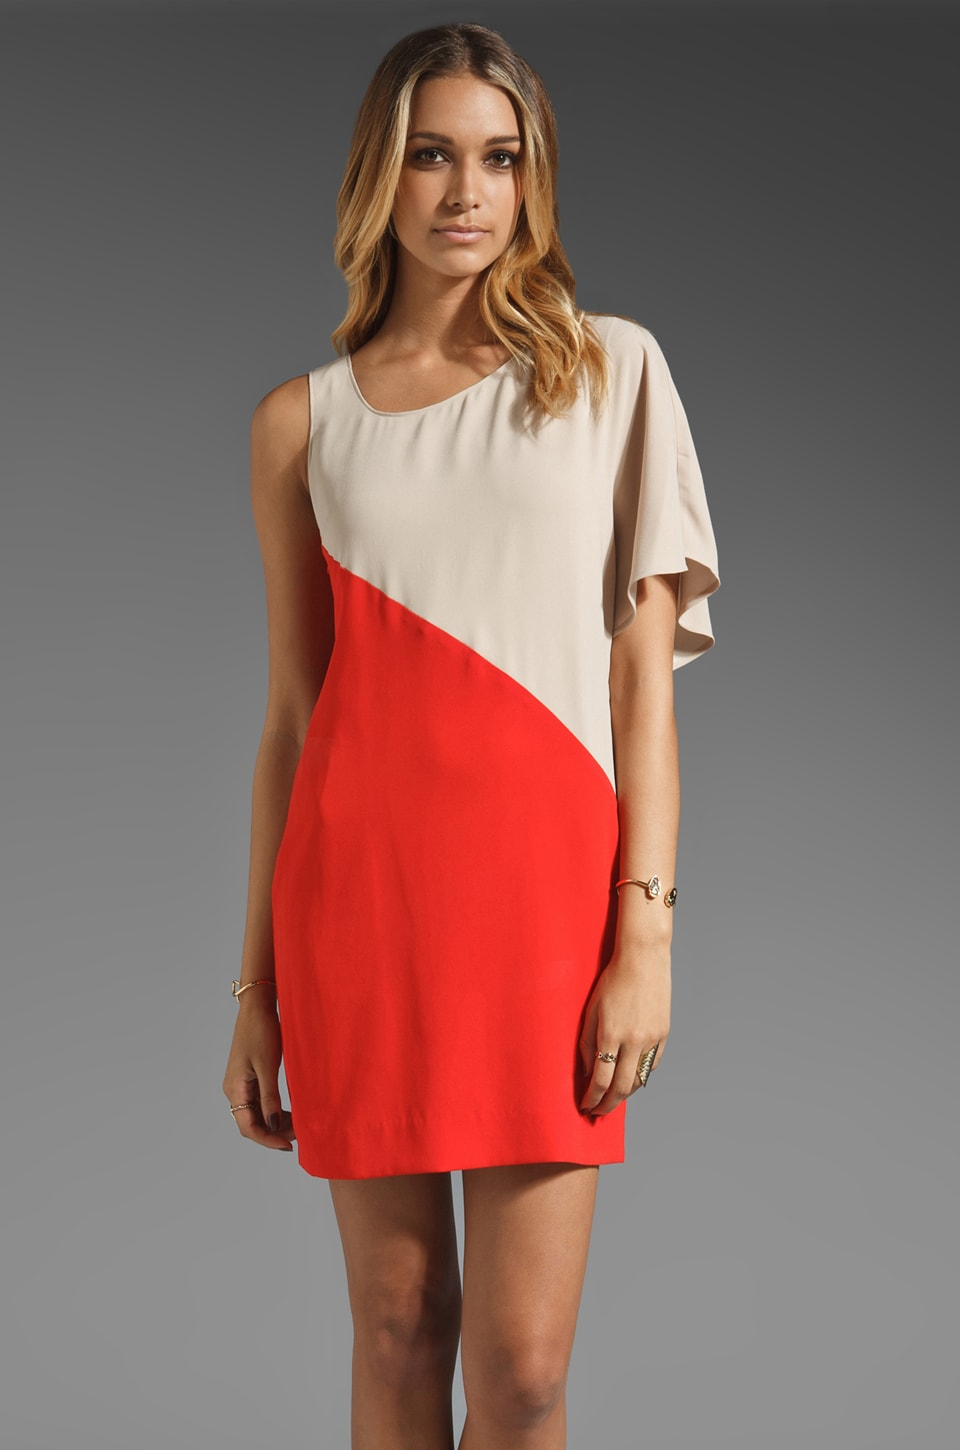 Trina Turk Matte Drape Keaton Dress in Poppy/Alabaster